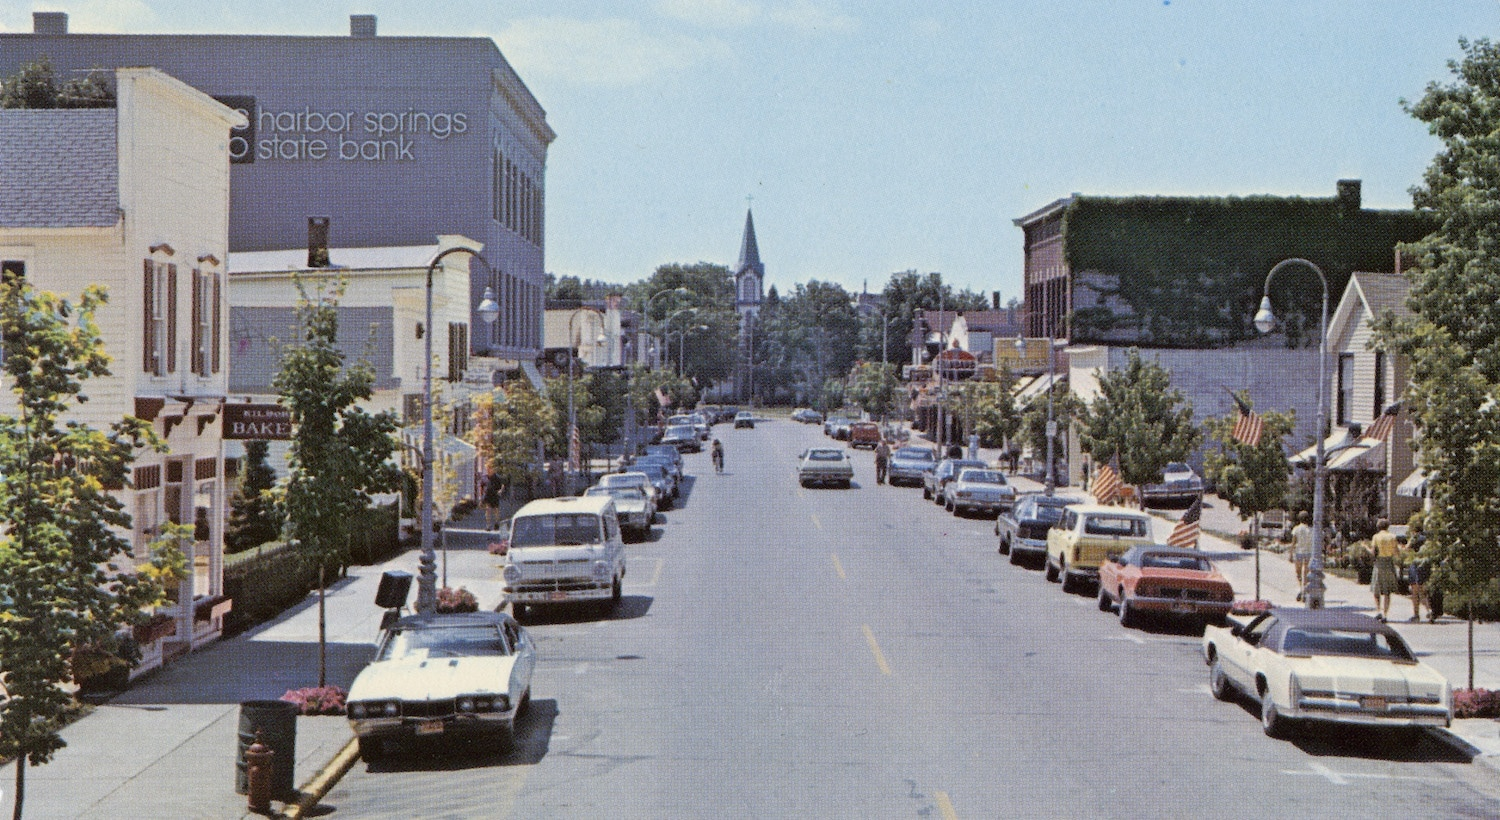 Historical Photos of Harbor Springs